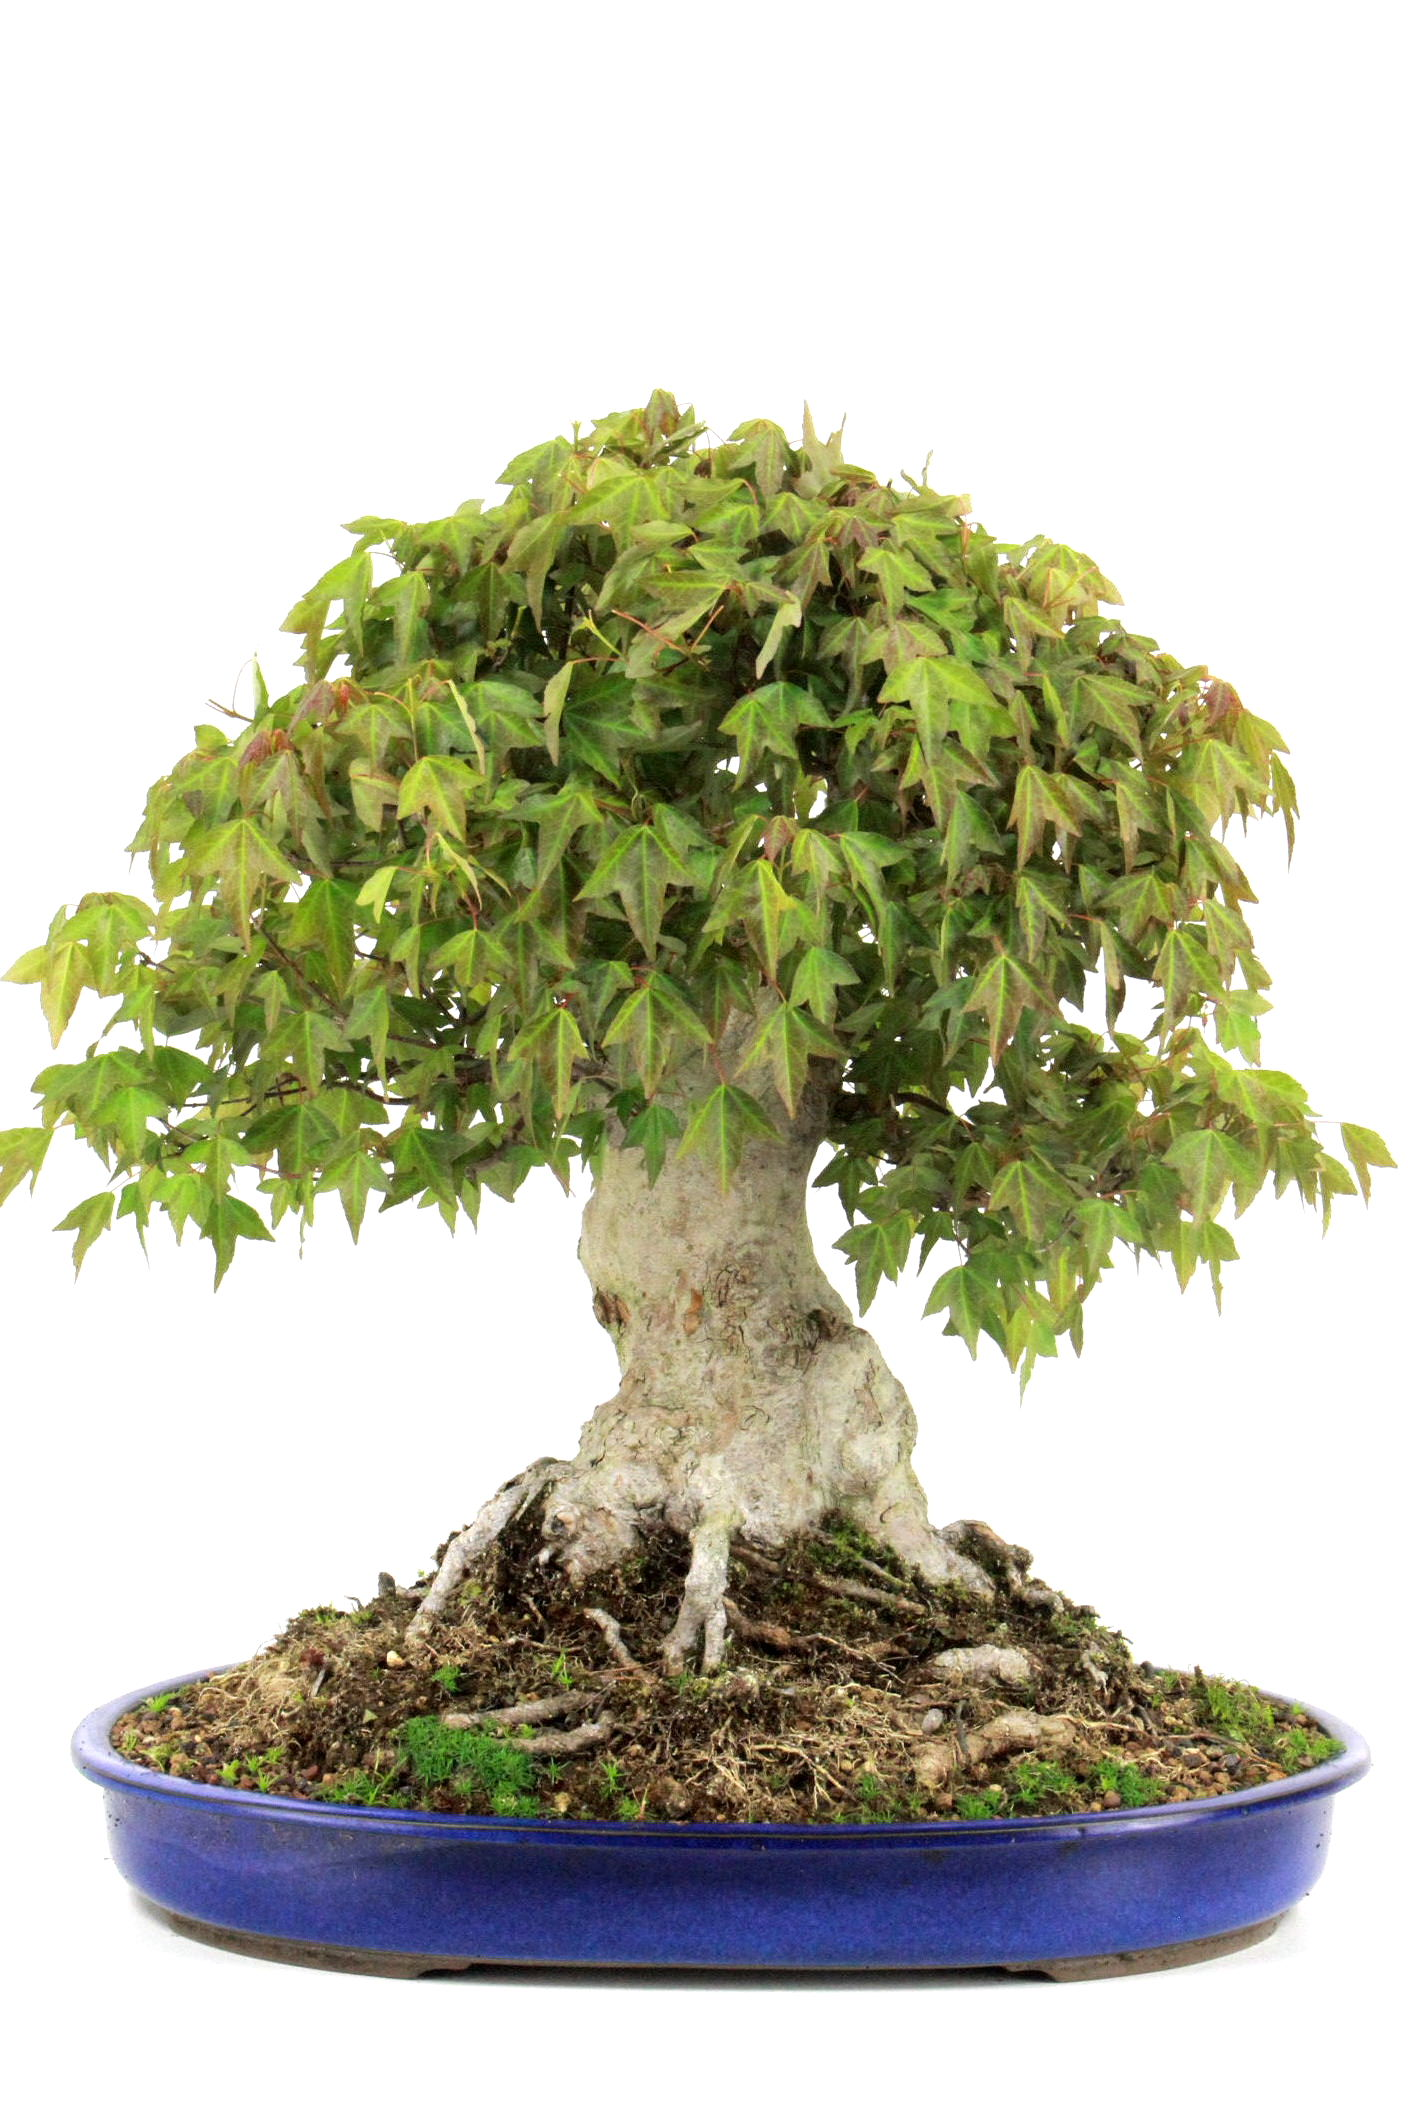 Bonsai dreispitz ahorn 53 cm 4527 bei oyaki bonsai kaufen for Bonsai onlineshop